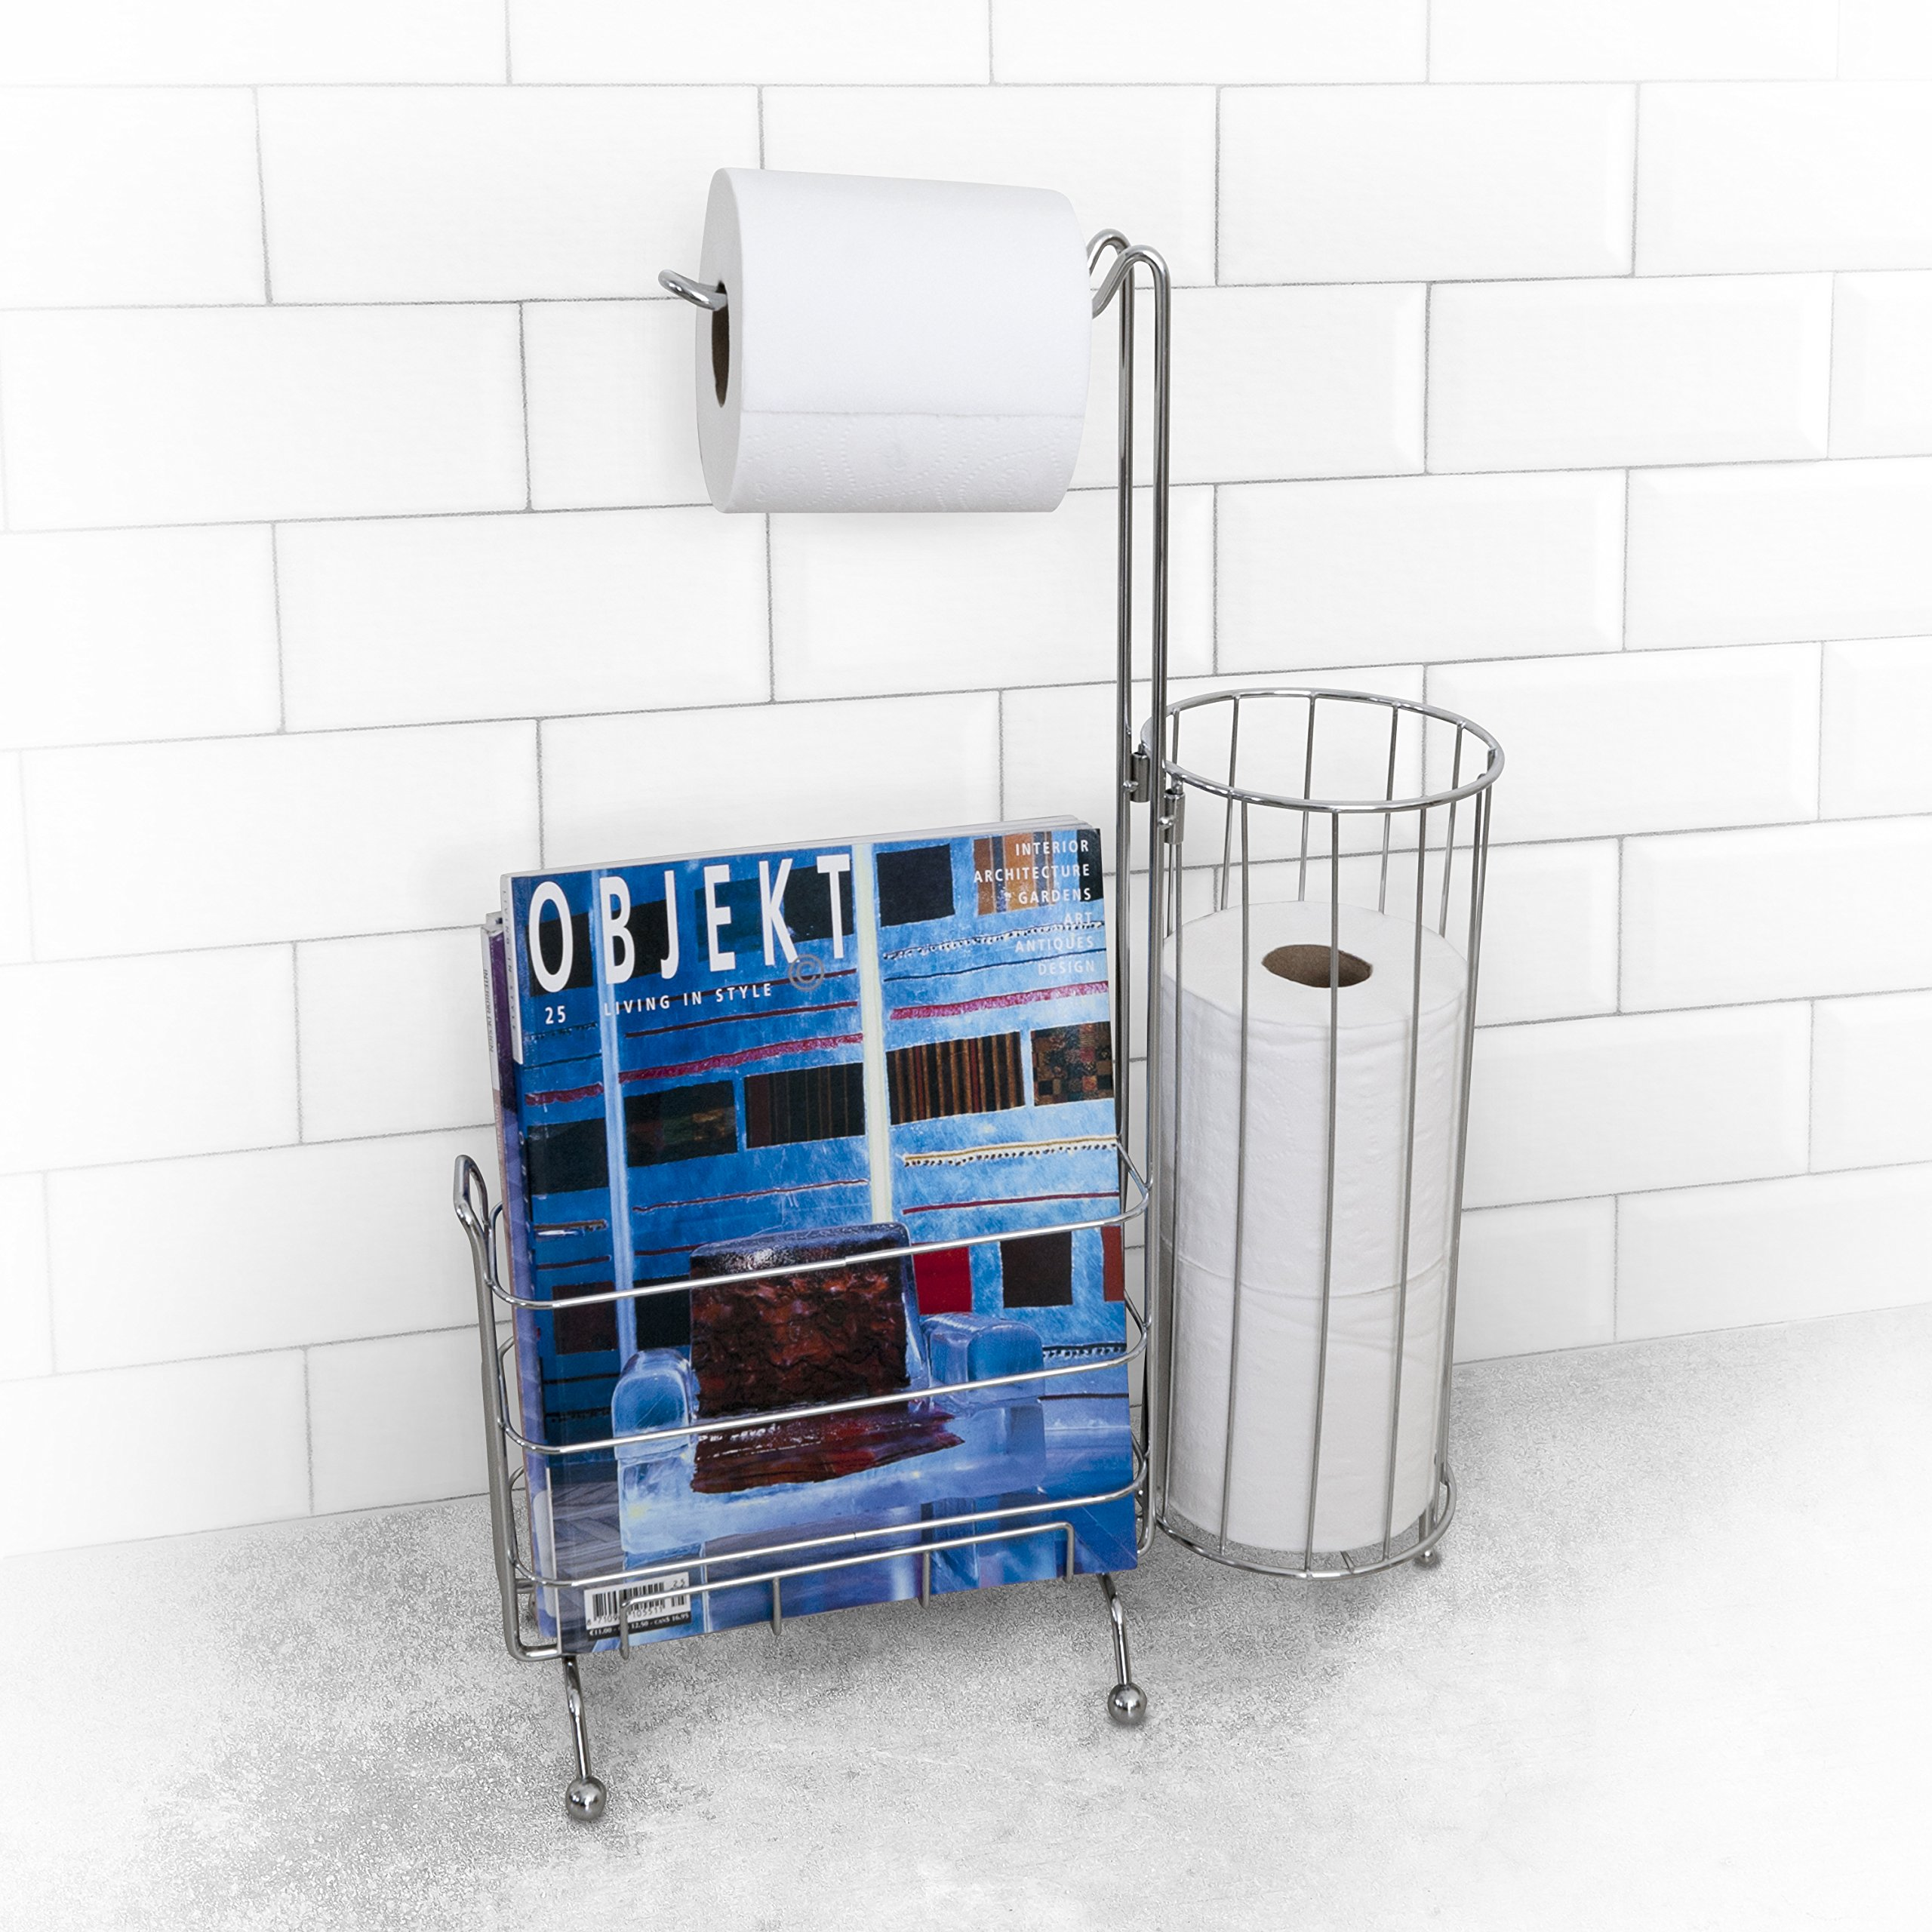 Splash Home Free Standing Toilet Paper Holder Plus A Storage For Books In The Bathroom 23 x 6 x 11 Inches Chrome by Splash Home